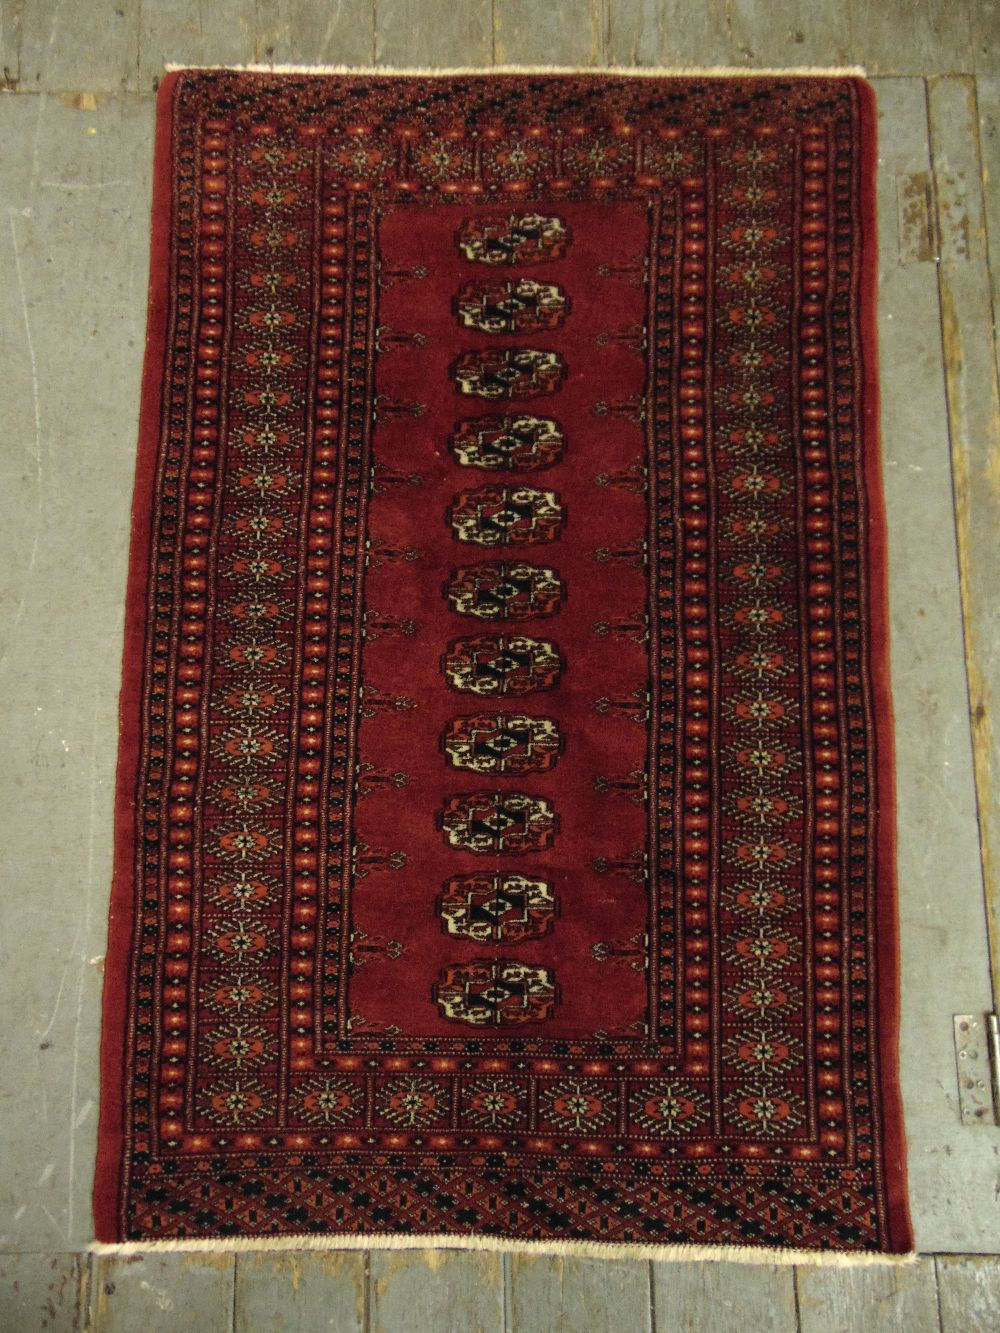 Lot 38 - A Persian wool carpet red ground with repeating geometric pattern and border, 121 x 79cm